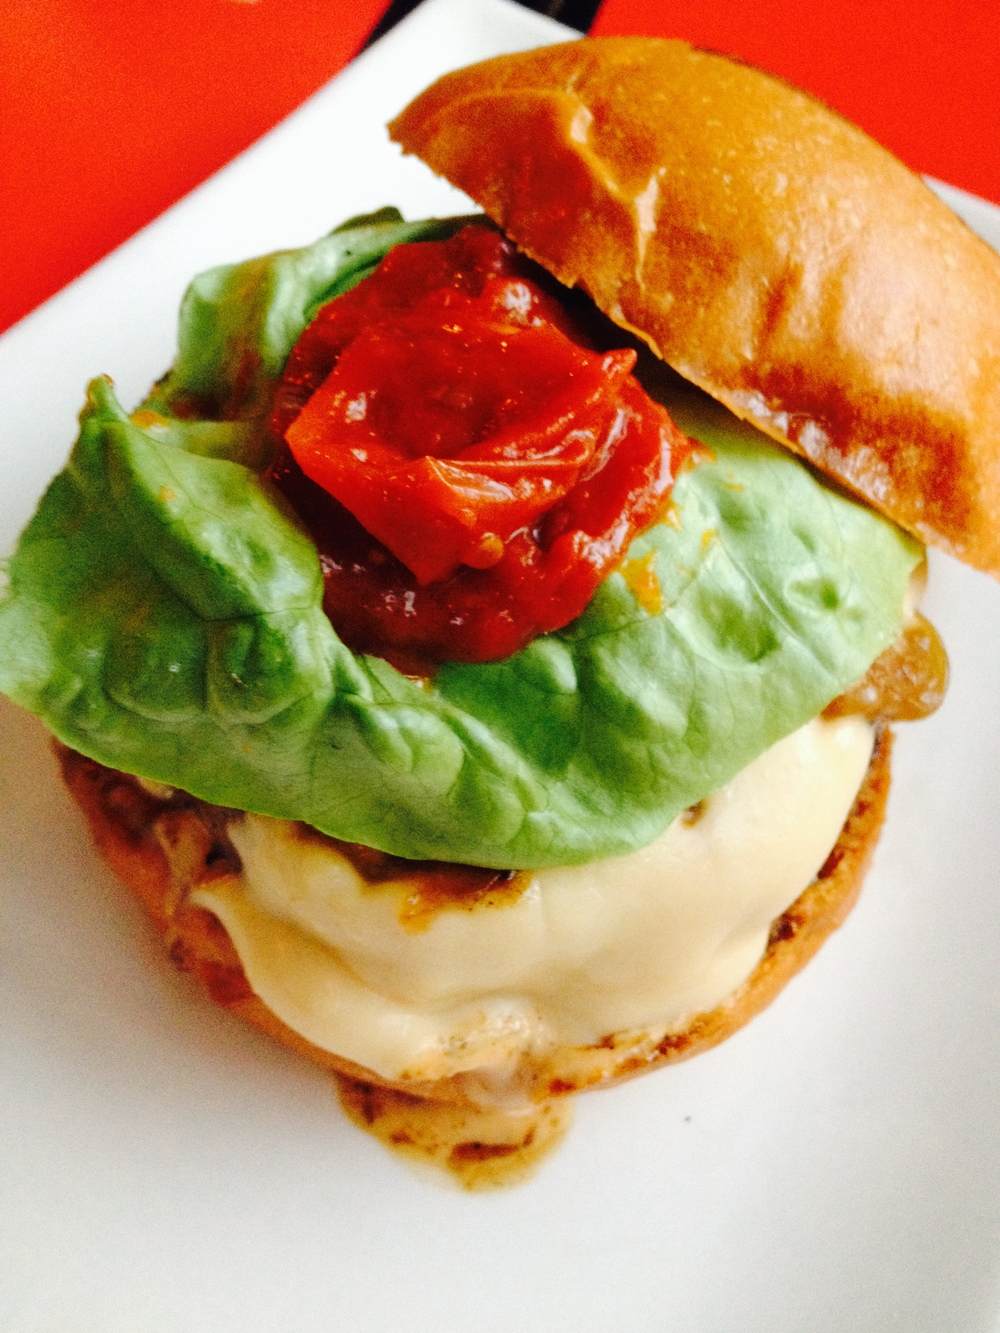 The Cali Burger, with butter lettuce, slow-roasted tomato, house spread, house-made American cheese, caramelized onions.